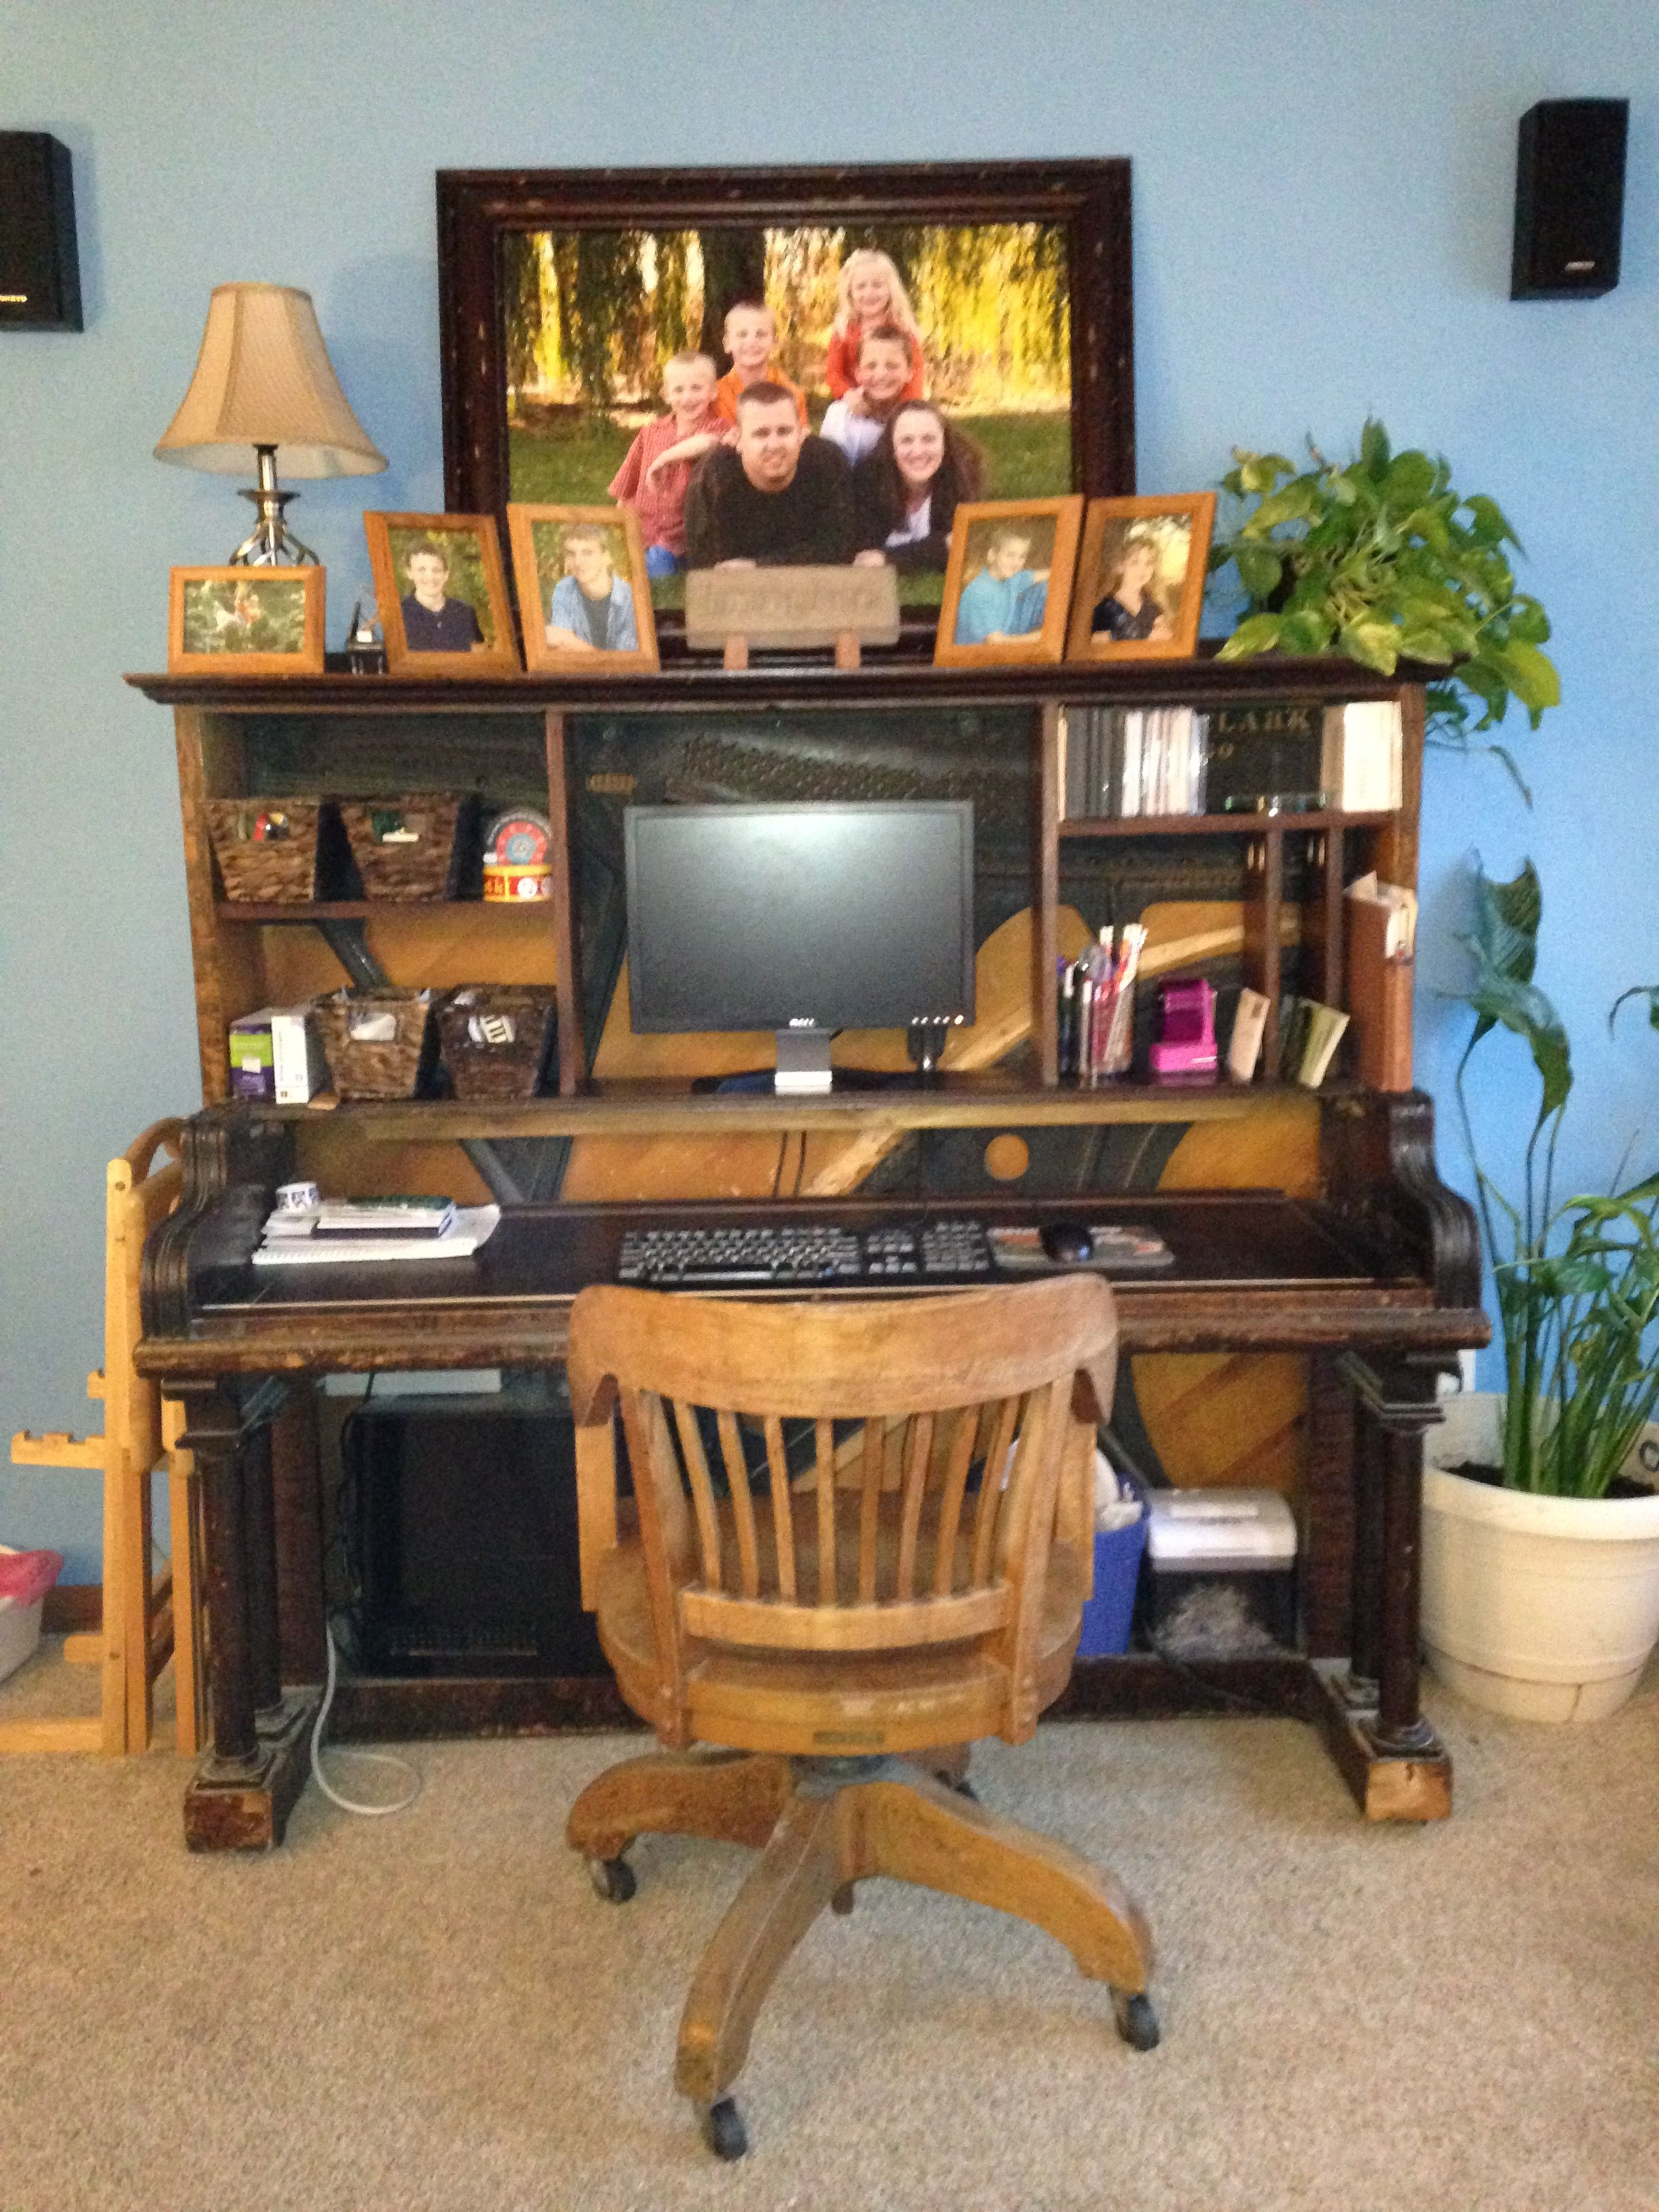 Old Piano Gutted And Repurposed Into A Computer Desk Old Pianos Repurposed Furniture Basement Decor